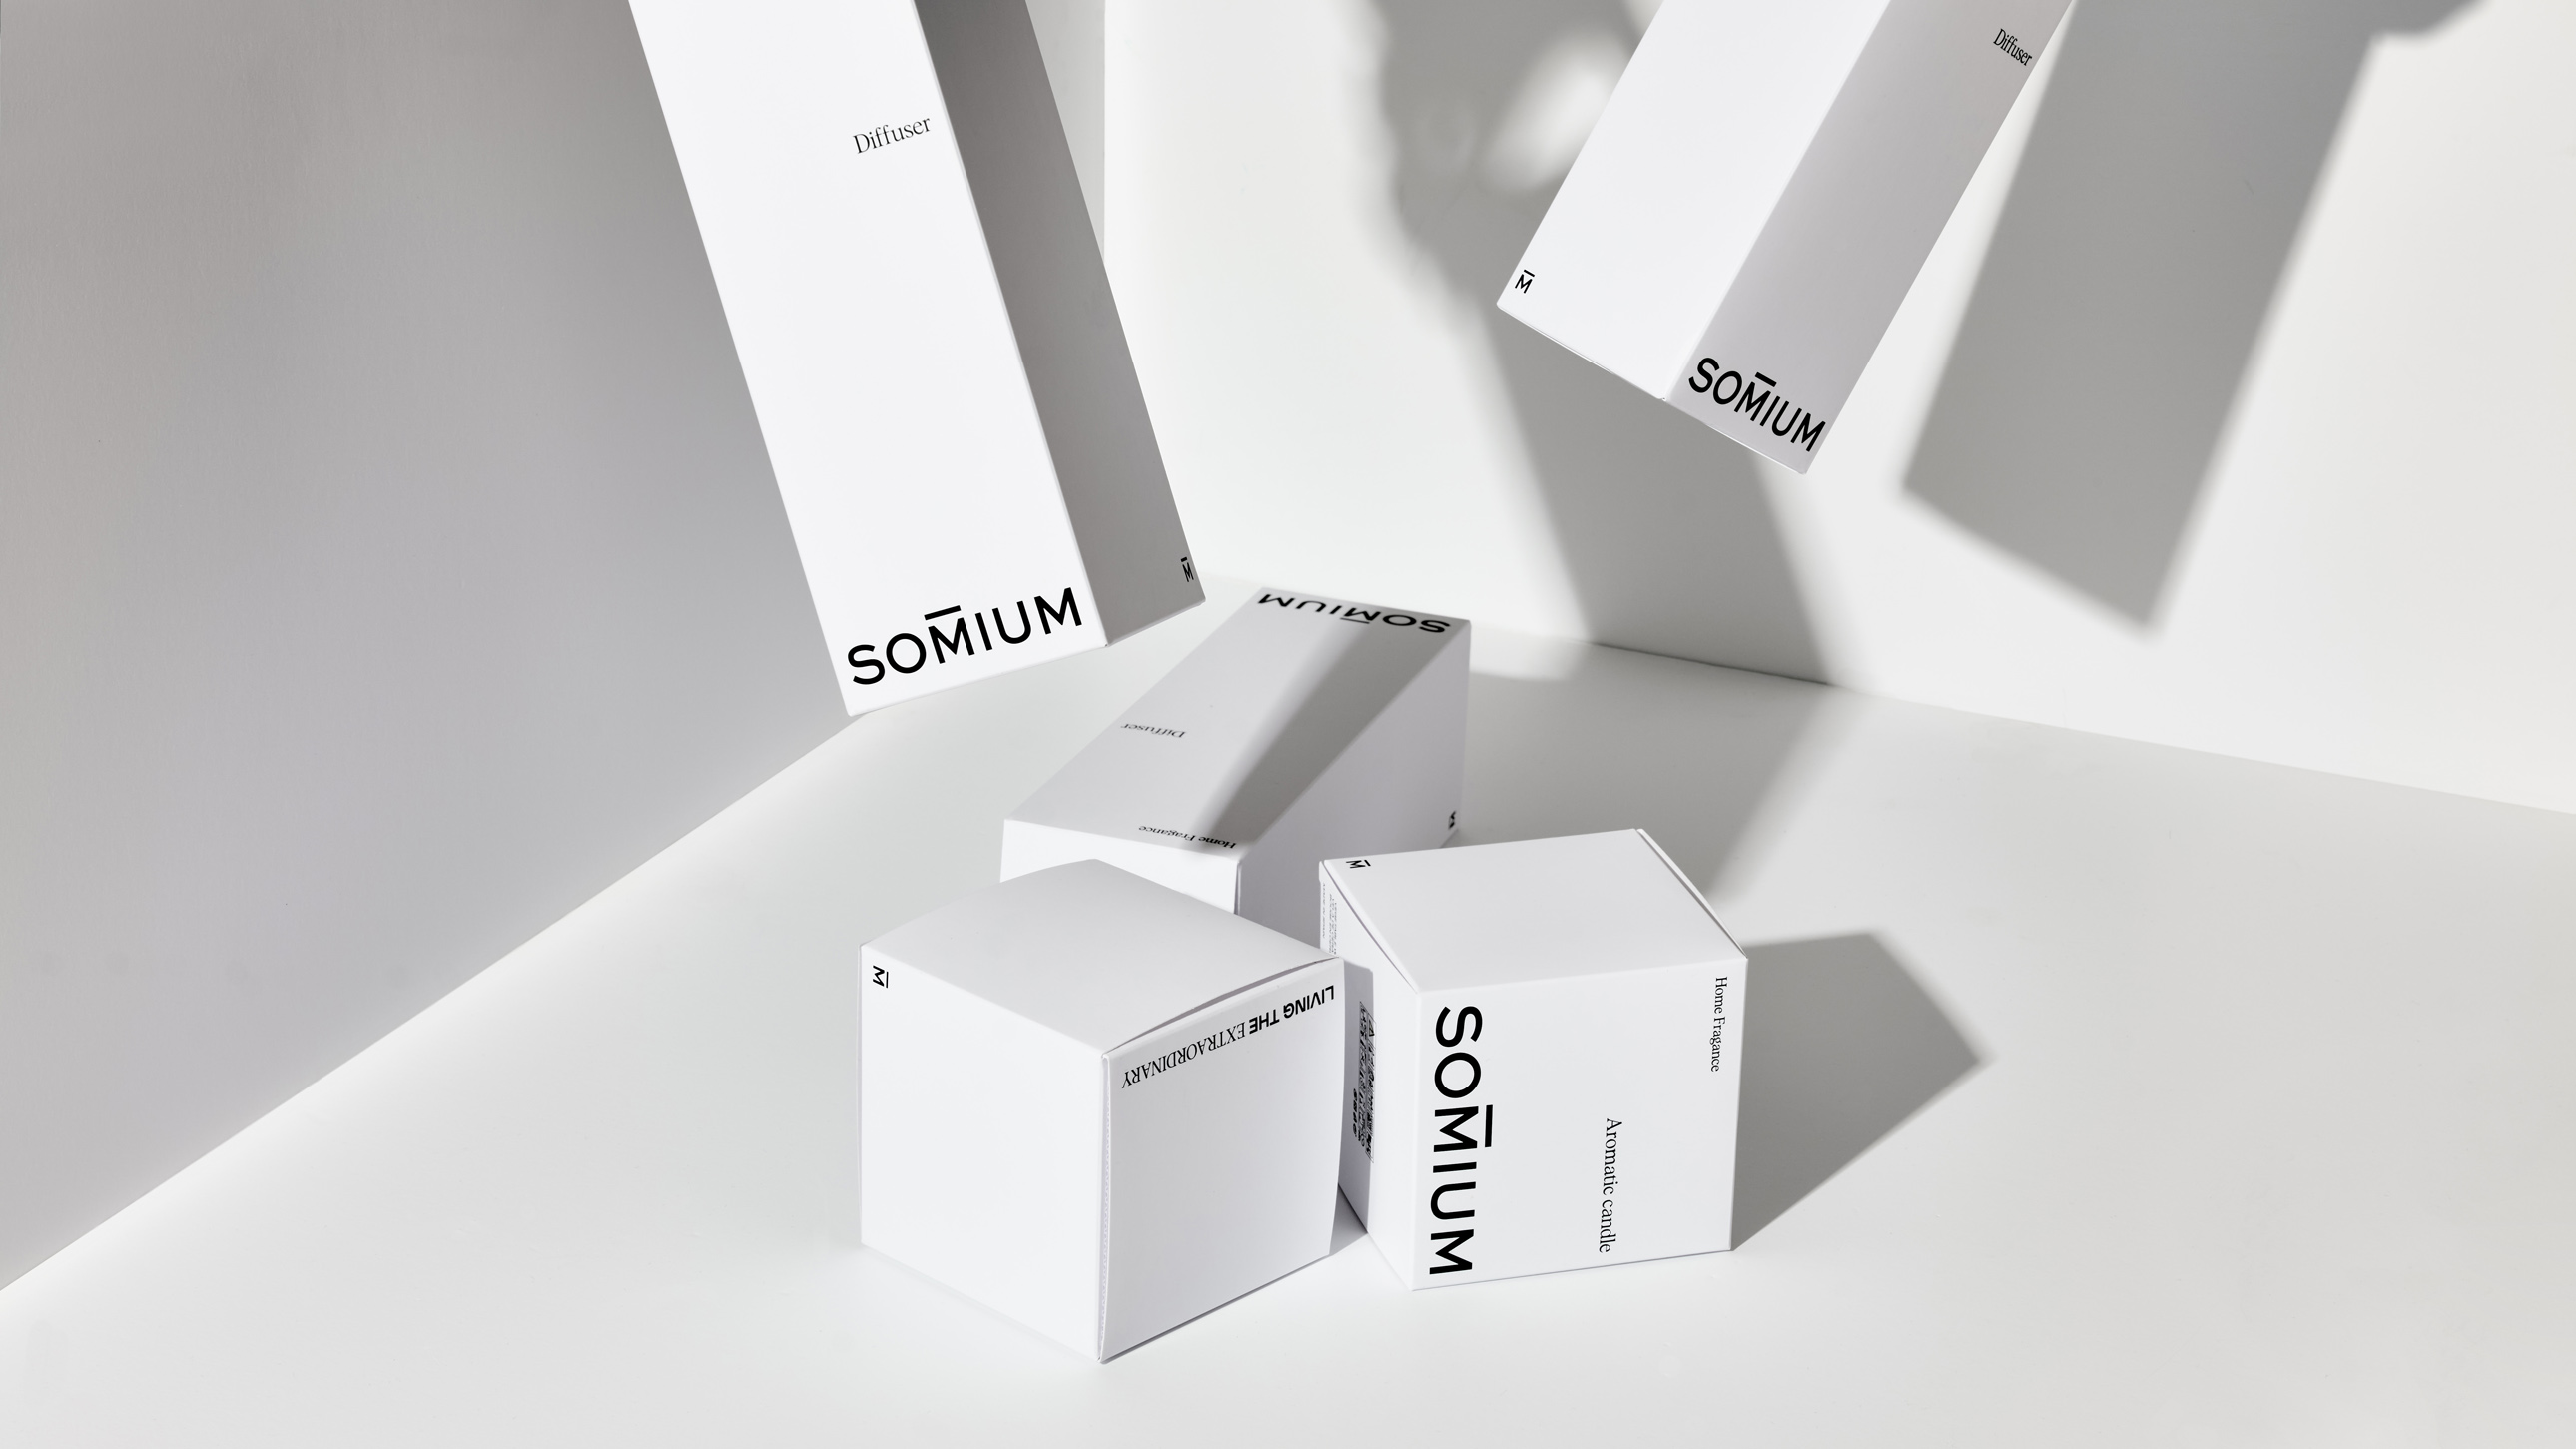 Evangelisti y Cía. Creates Brand and Packaging for Home Fragrance Somium